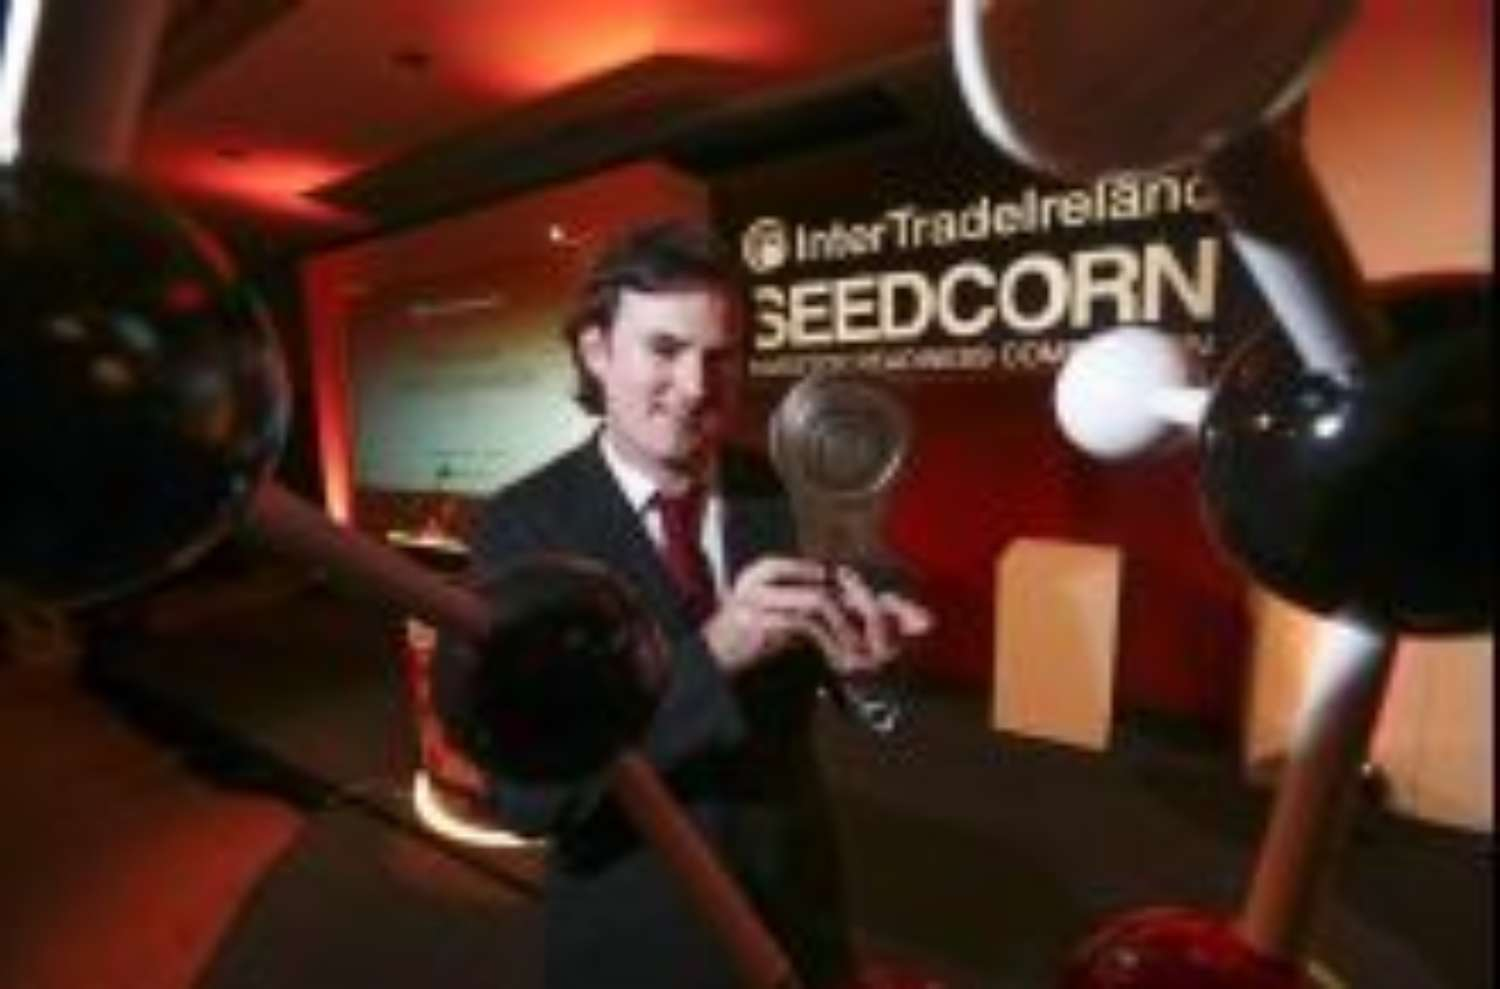 Innovative Limerick company Winner of 13th annual ITI Seedcorn Competition